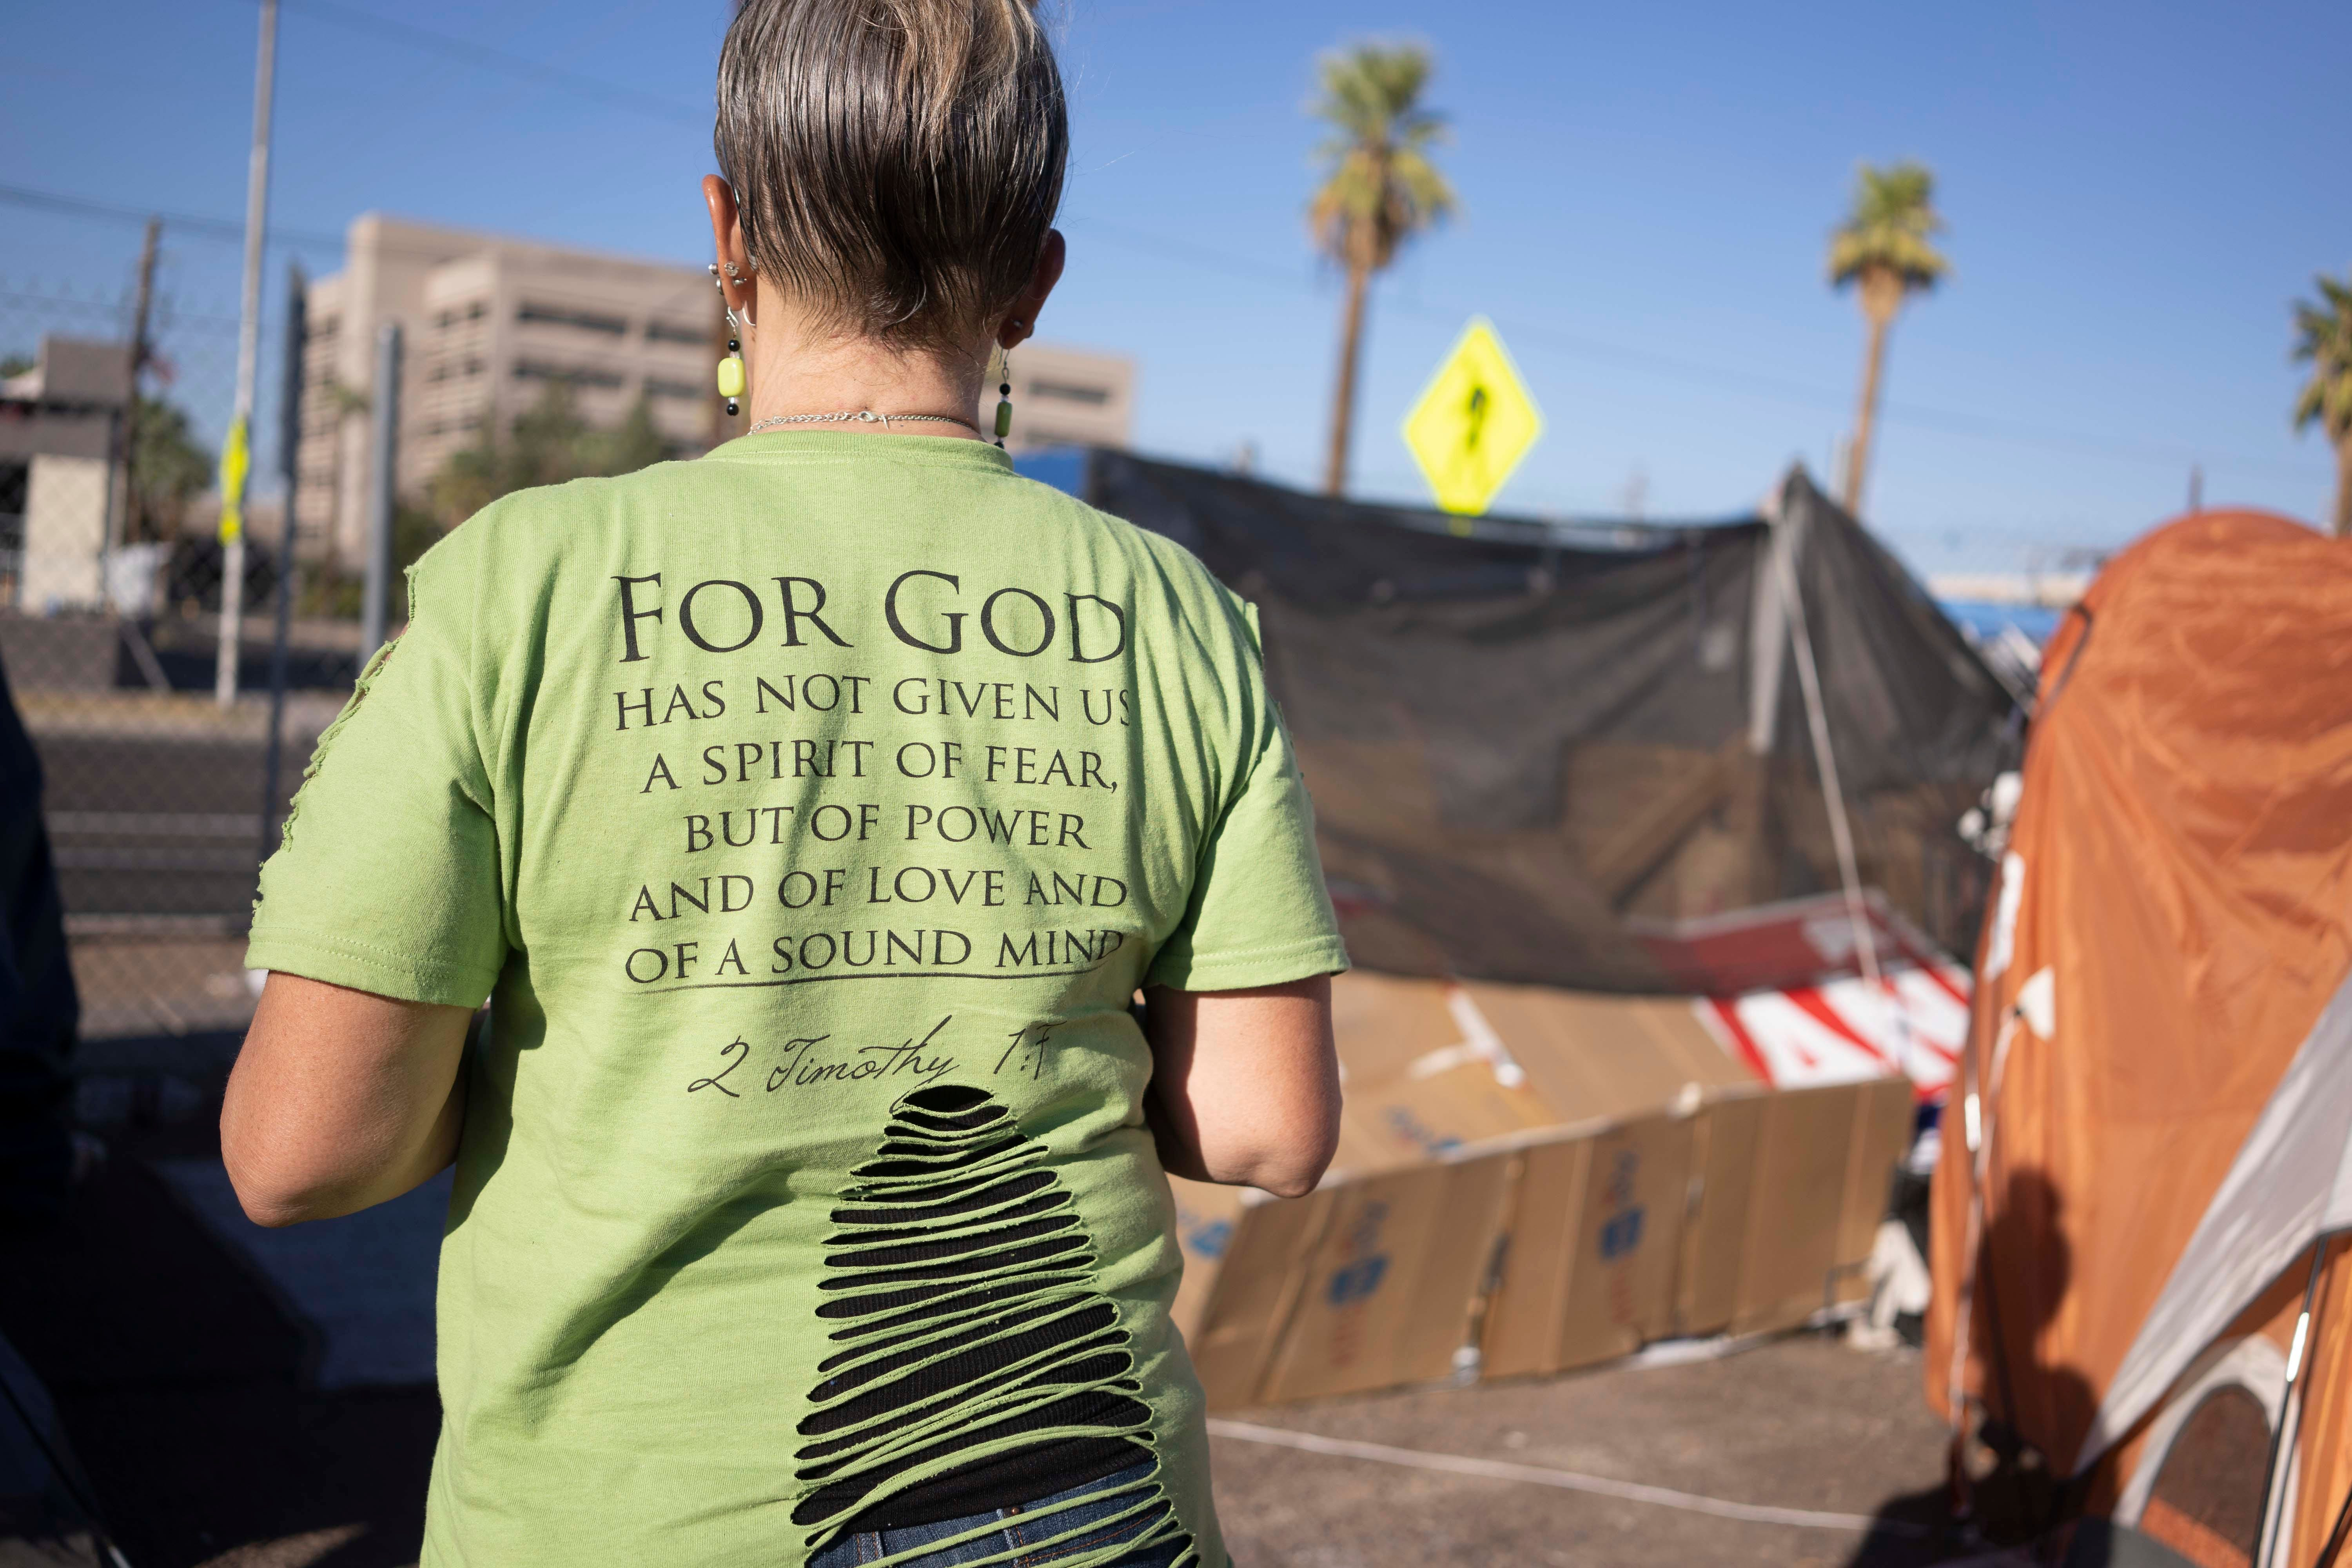 """Darlene Carchedi (seen on Oct. 15, 2020) says the new security guards at the homeless encampment in Phoenix were treating them """"like prisoners"""" again. The old guards, who she'd formed a great connection with, had been reassigned."""